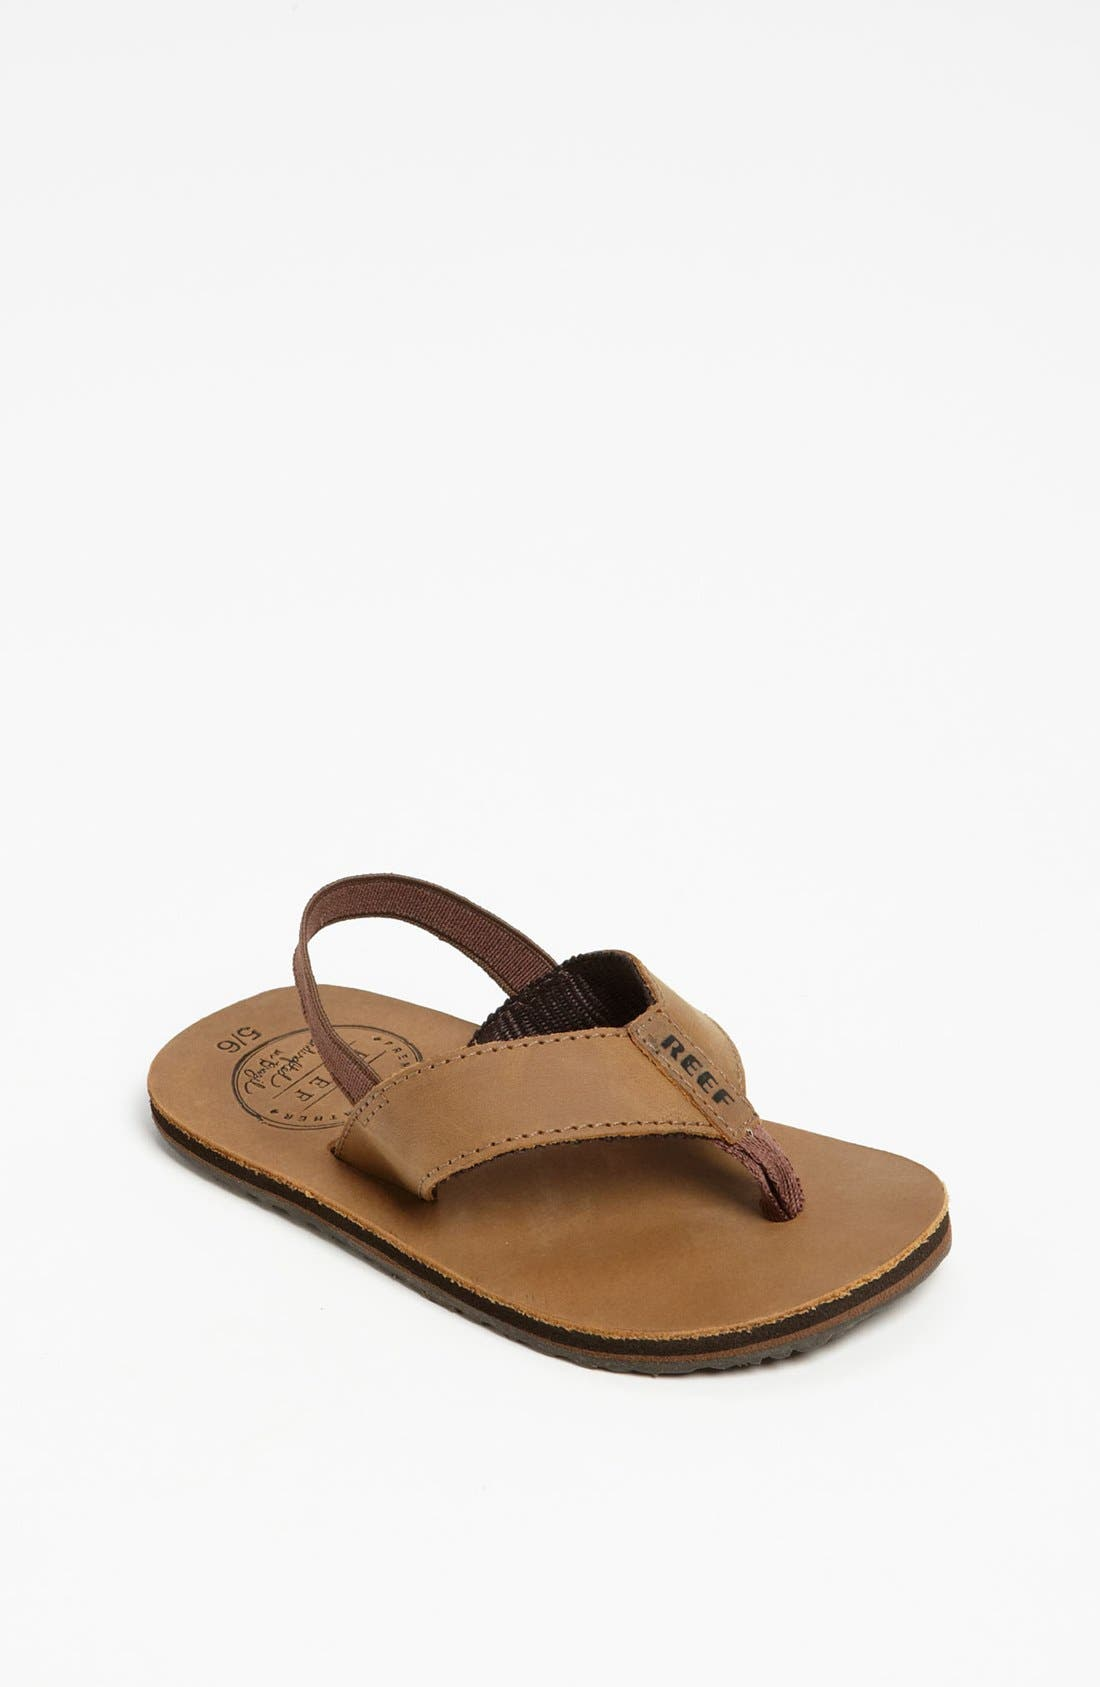 REEF 'Grom' Leather Flip-Flop, Main, color, BRONZE BROWN